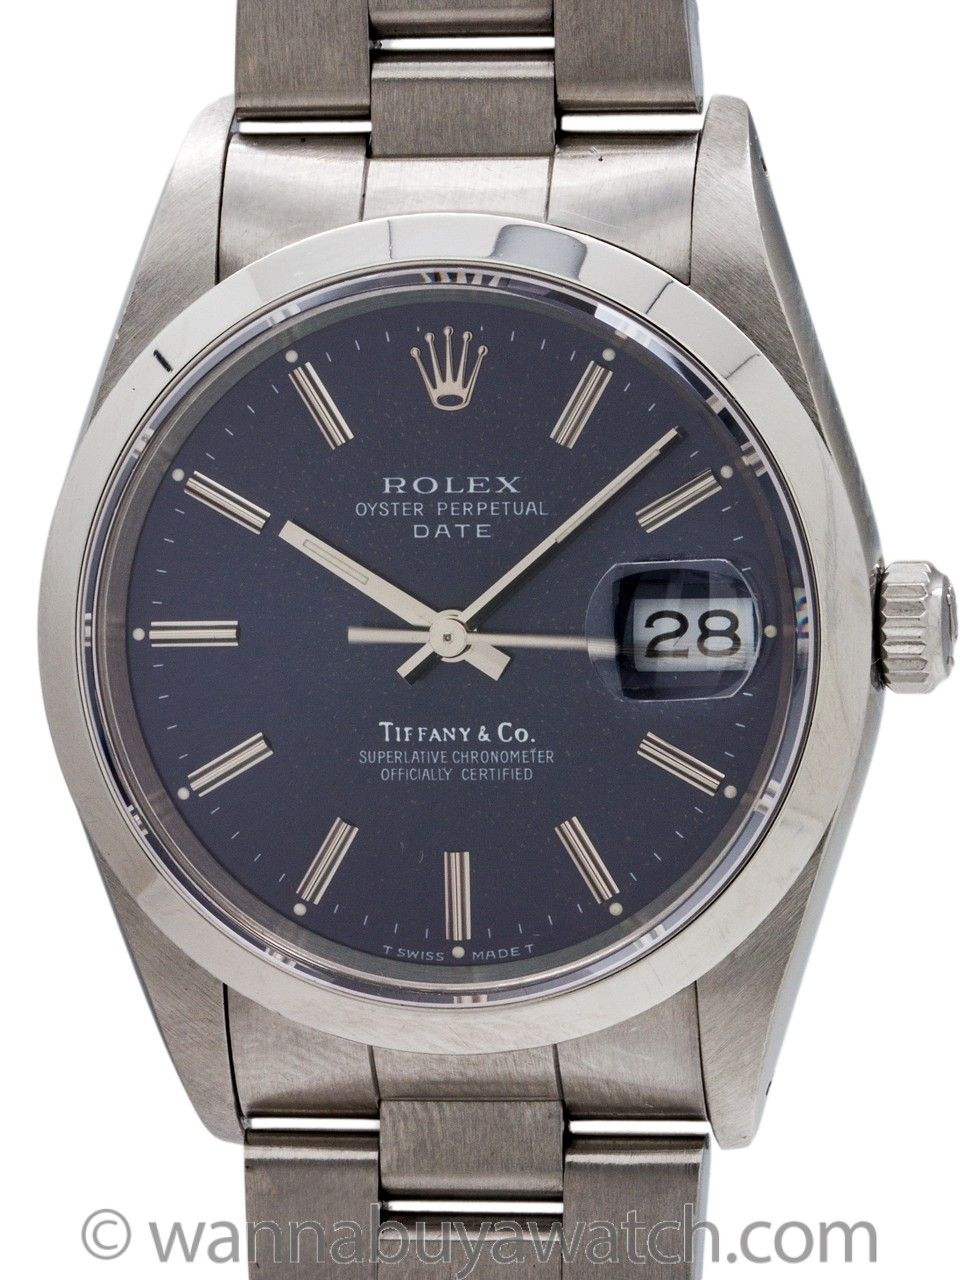 Rolex Oyster Perpetual Date Ref 15200 Tiffany Co Circa 1990 Rolex Rolex Oyster Perpetual Date Oyster Perpetual